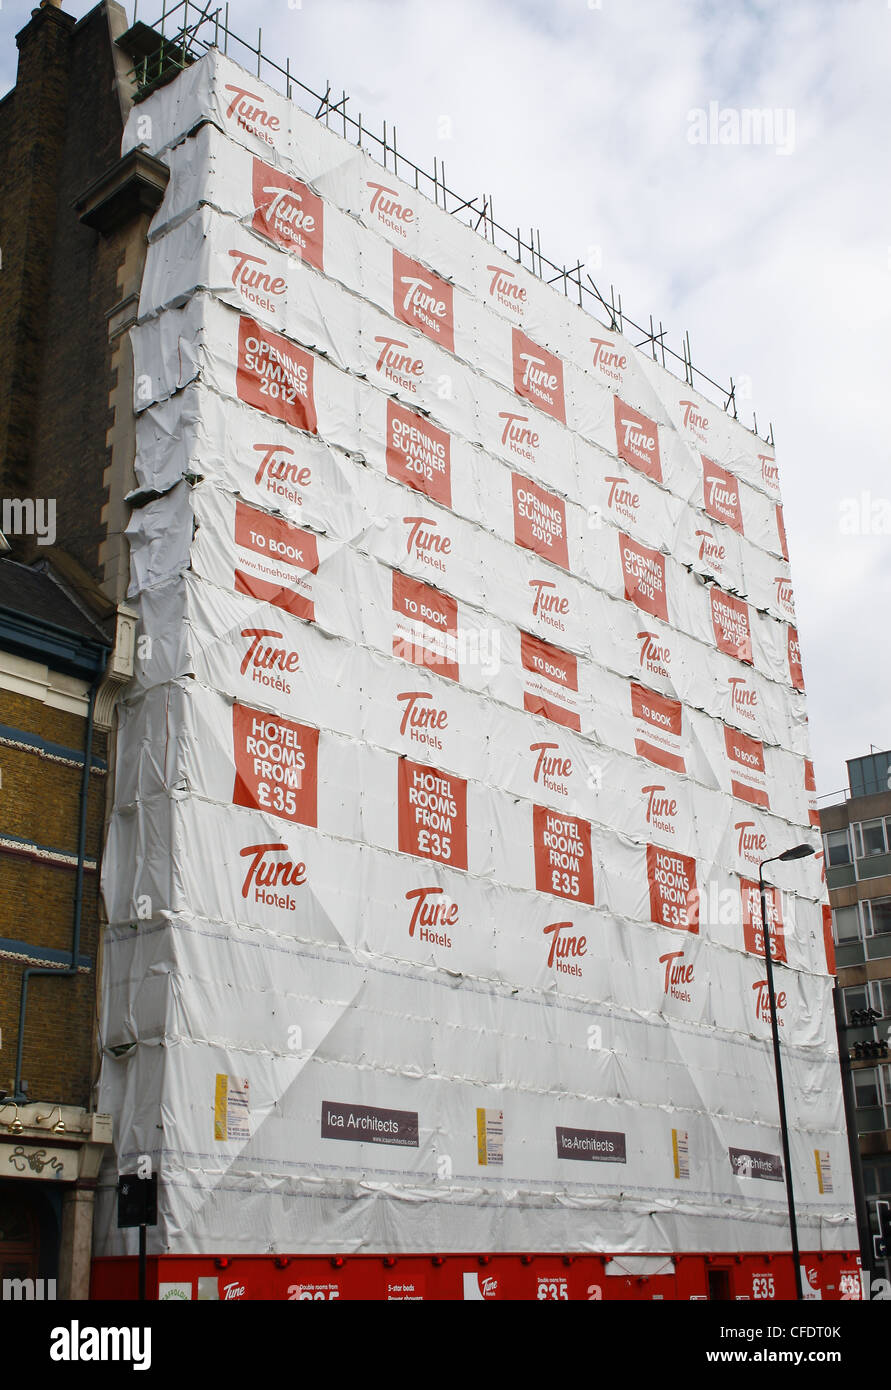 Tune Hotel being built on Grays Inn Road, London, WC1 - Stock Image